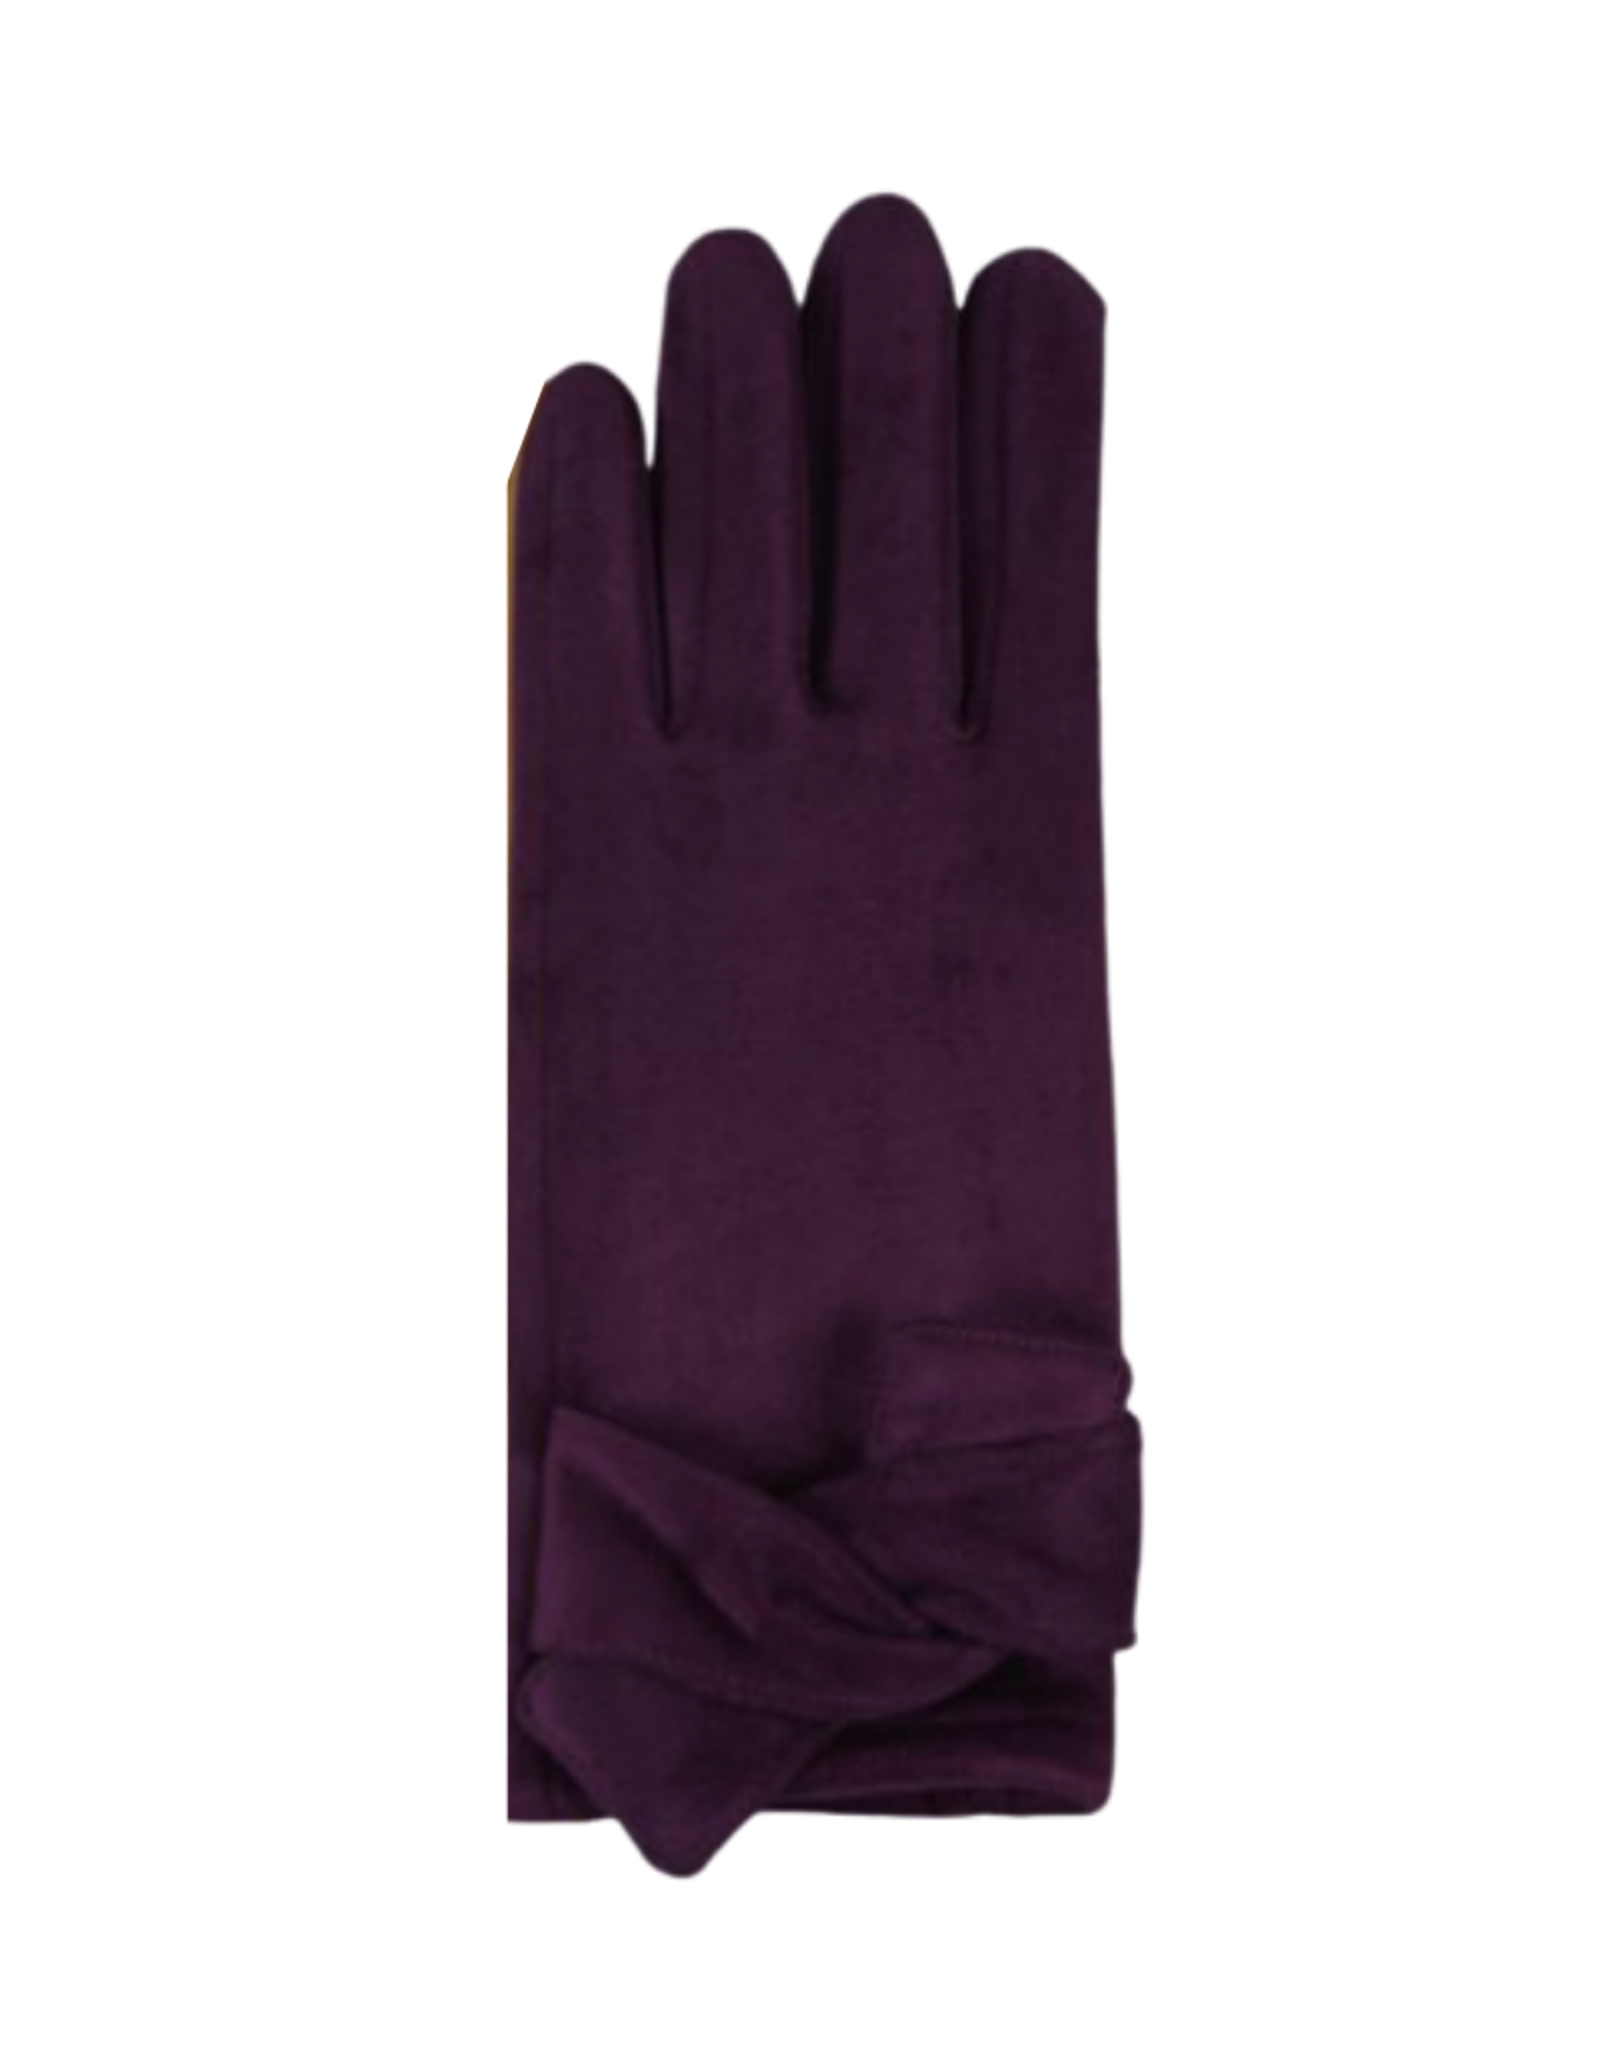 GLOVES-FASHION-FAUX SUEDE, TEXTING